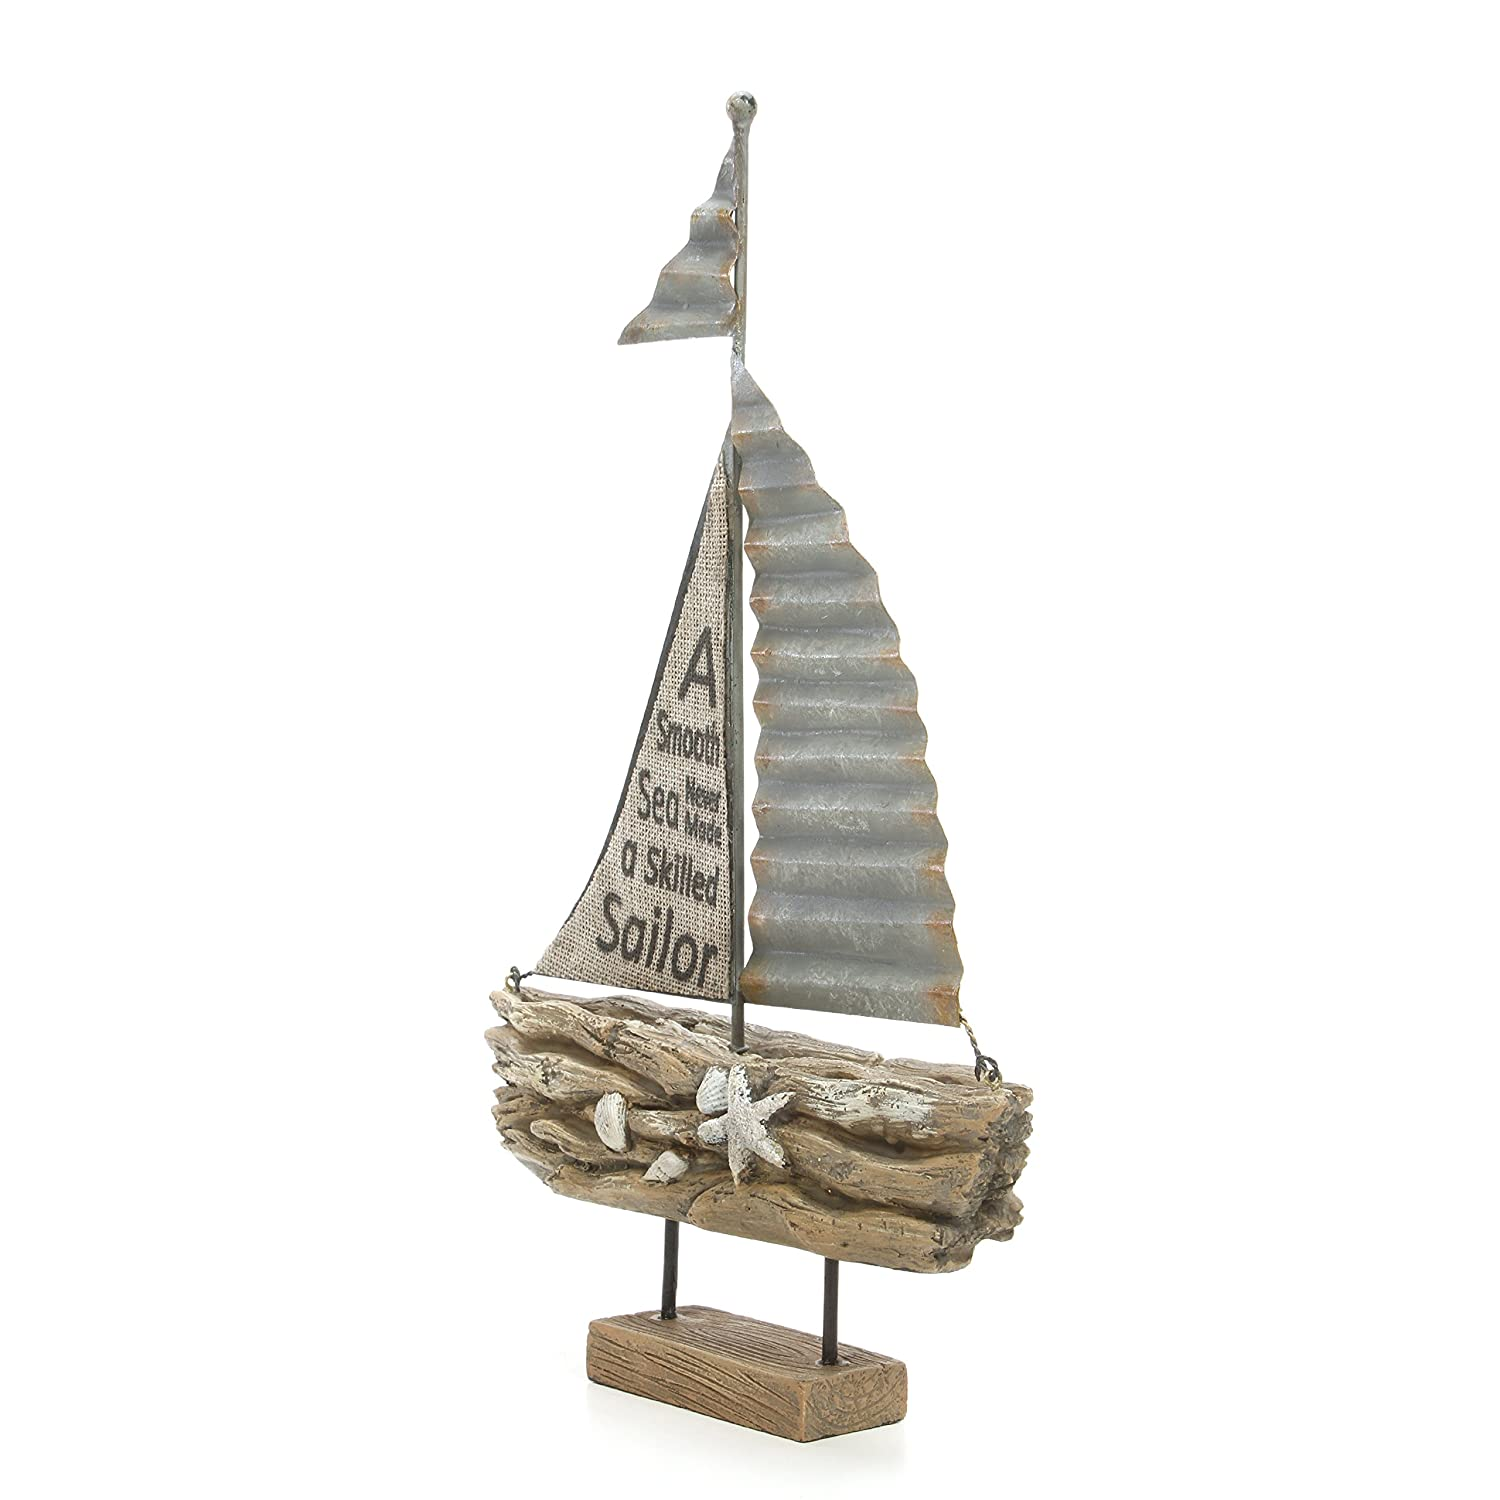 Hosley 13.2 High Home Party Favor Spa Reiki Decorative Tabletop Driftwood Sailboat Bathroom Settings P1 Meditation Ideal Gift for Wedding